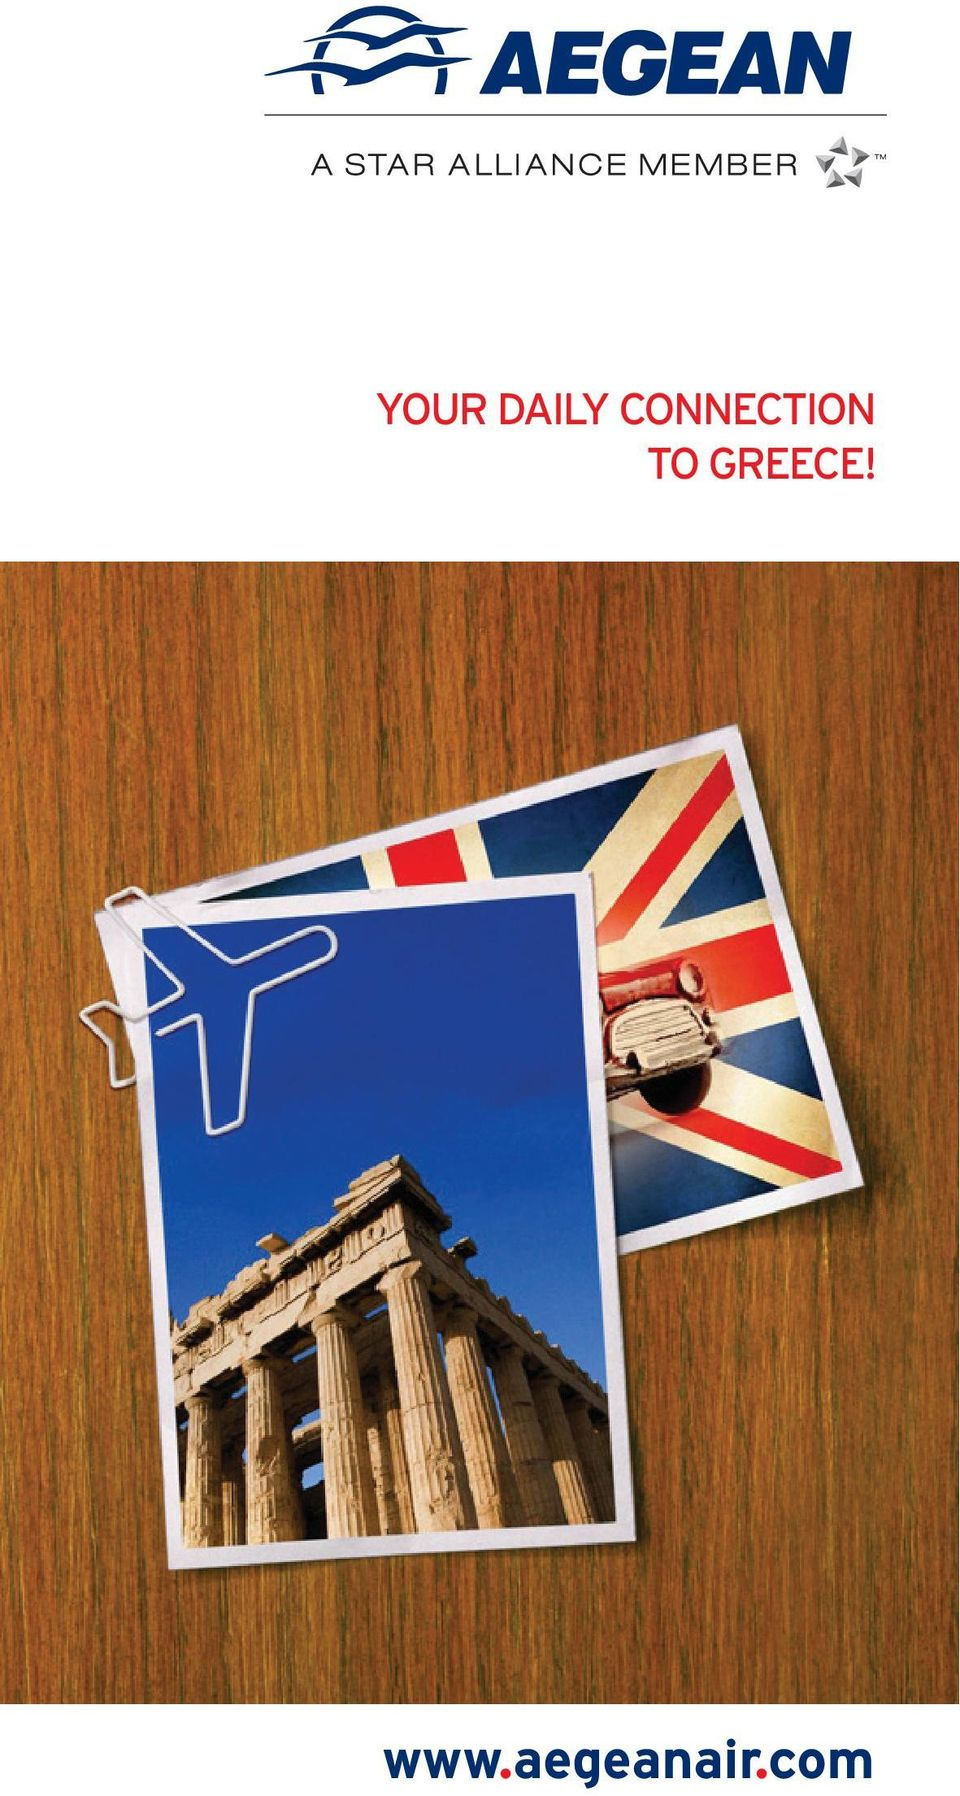 TO GREECE!